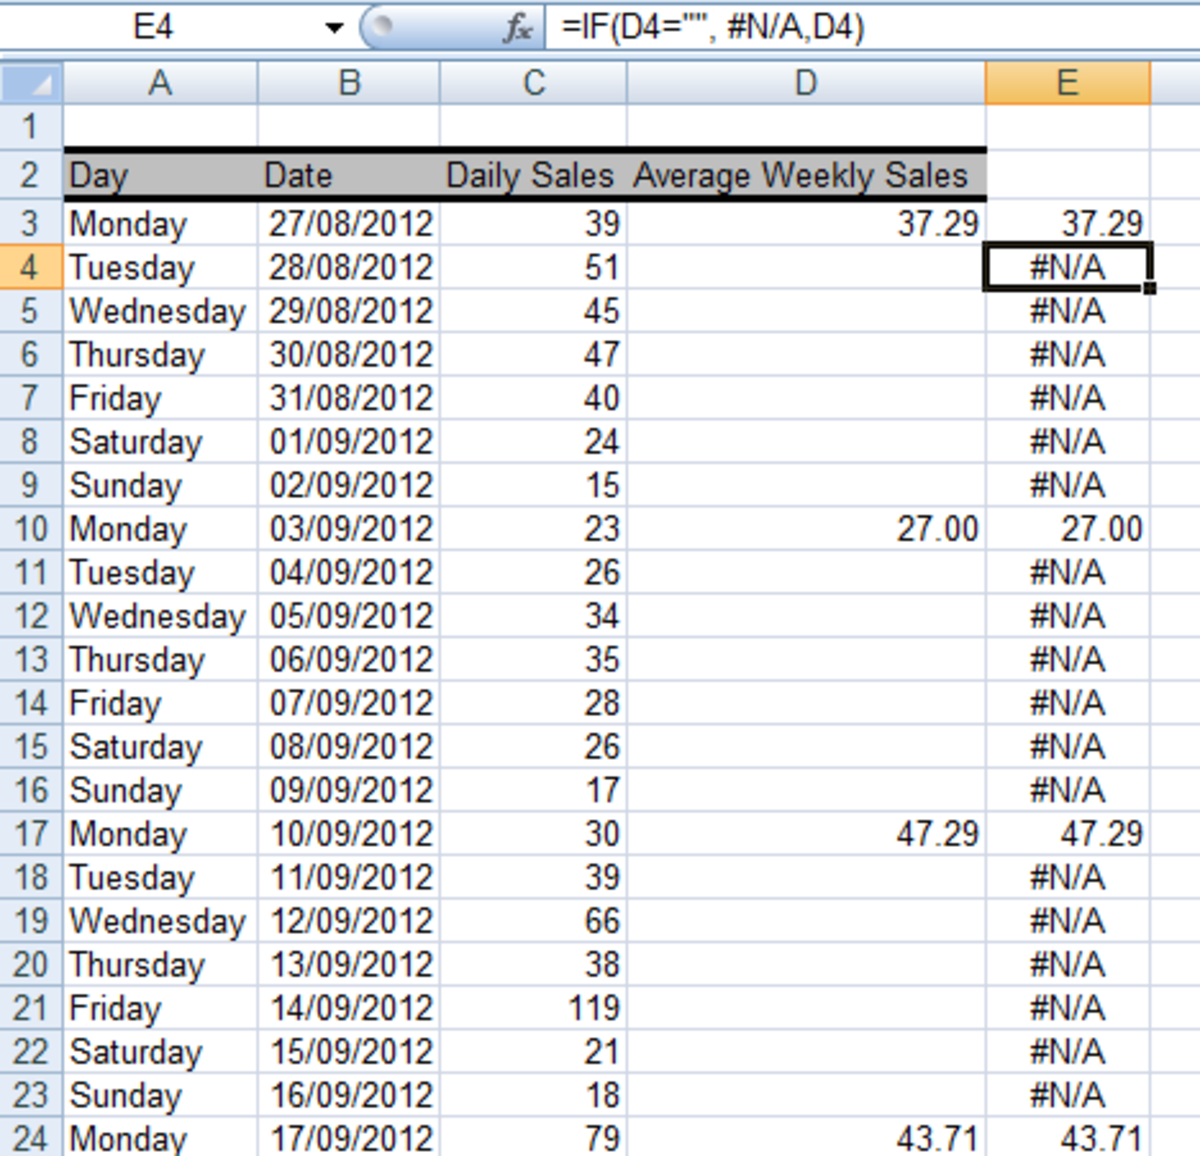 Ediblewildsus  Surprising How To Get Excel  And  To Ignore Empty Cells In A Chart Or  With Goodlooking Using The If Function In A Formula To Convert Empty Cells To Na With Cute  Hyundai Excel Hatchback Also Excel Undo Macro In Addition Vba Excel Print And Ms Excel Powerpivot As Well As Index Lookup Excel Additionally How Do I Show Formulas In Excel From Turbofuturecom With Ediblewildsus  Goodlooking How To Get Excel  And  To Ignore Empty Cells In A Chart Or  With Cute Using The If Function In A Formula To Convert Empty Cells To Na And Surprising  Hyundai Excel Hatchback Also Excel Undo Macro In Addition Vba Excel Print From Turbofuturecom